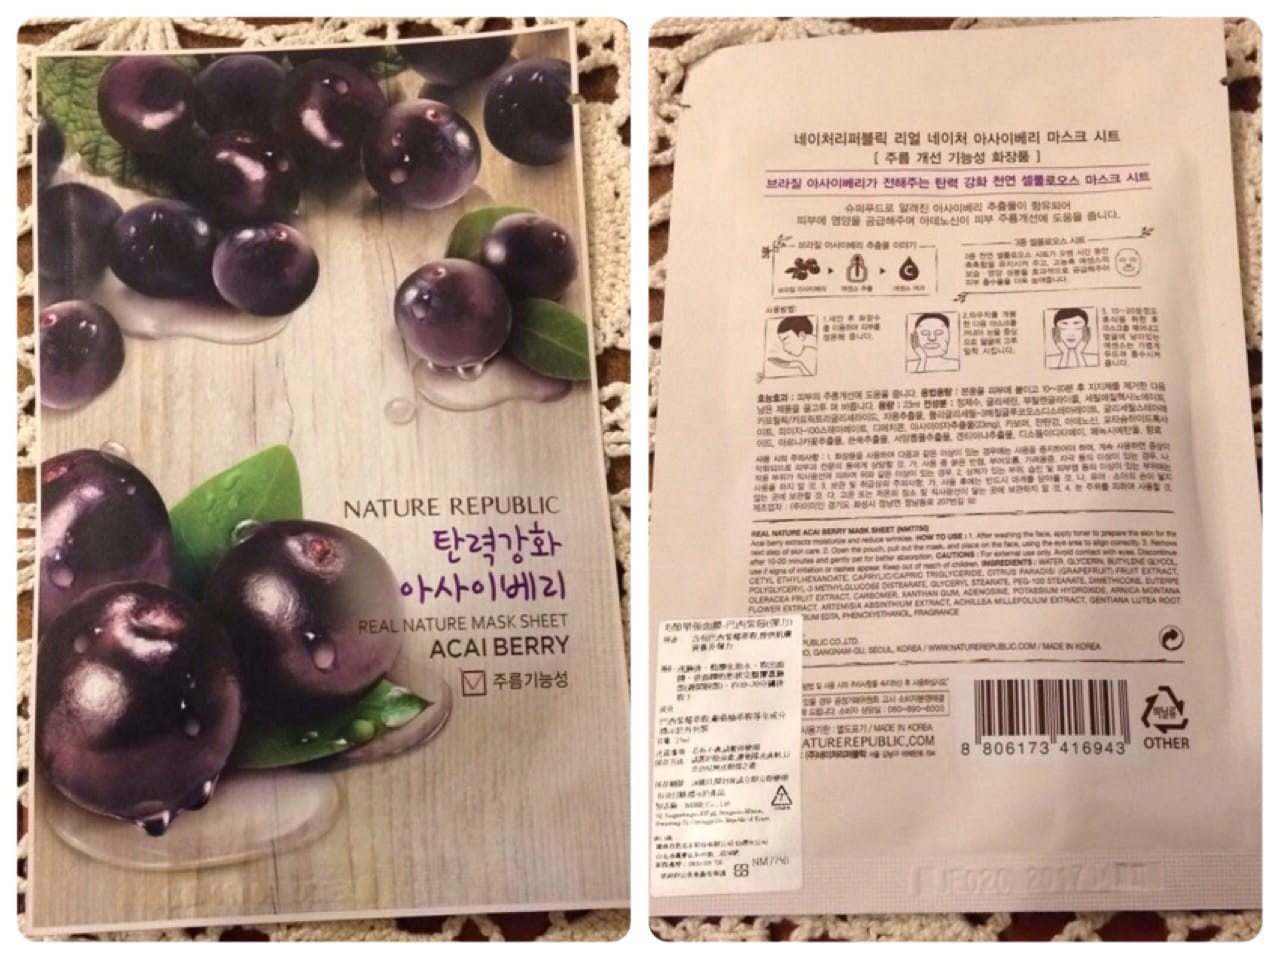 Mặt nạ Nature Republic Real Nature Mask Sheet Acaiberry 1